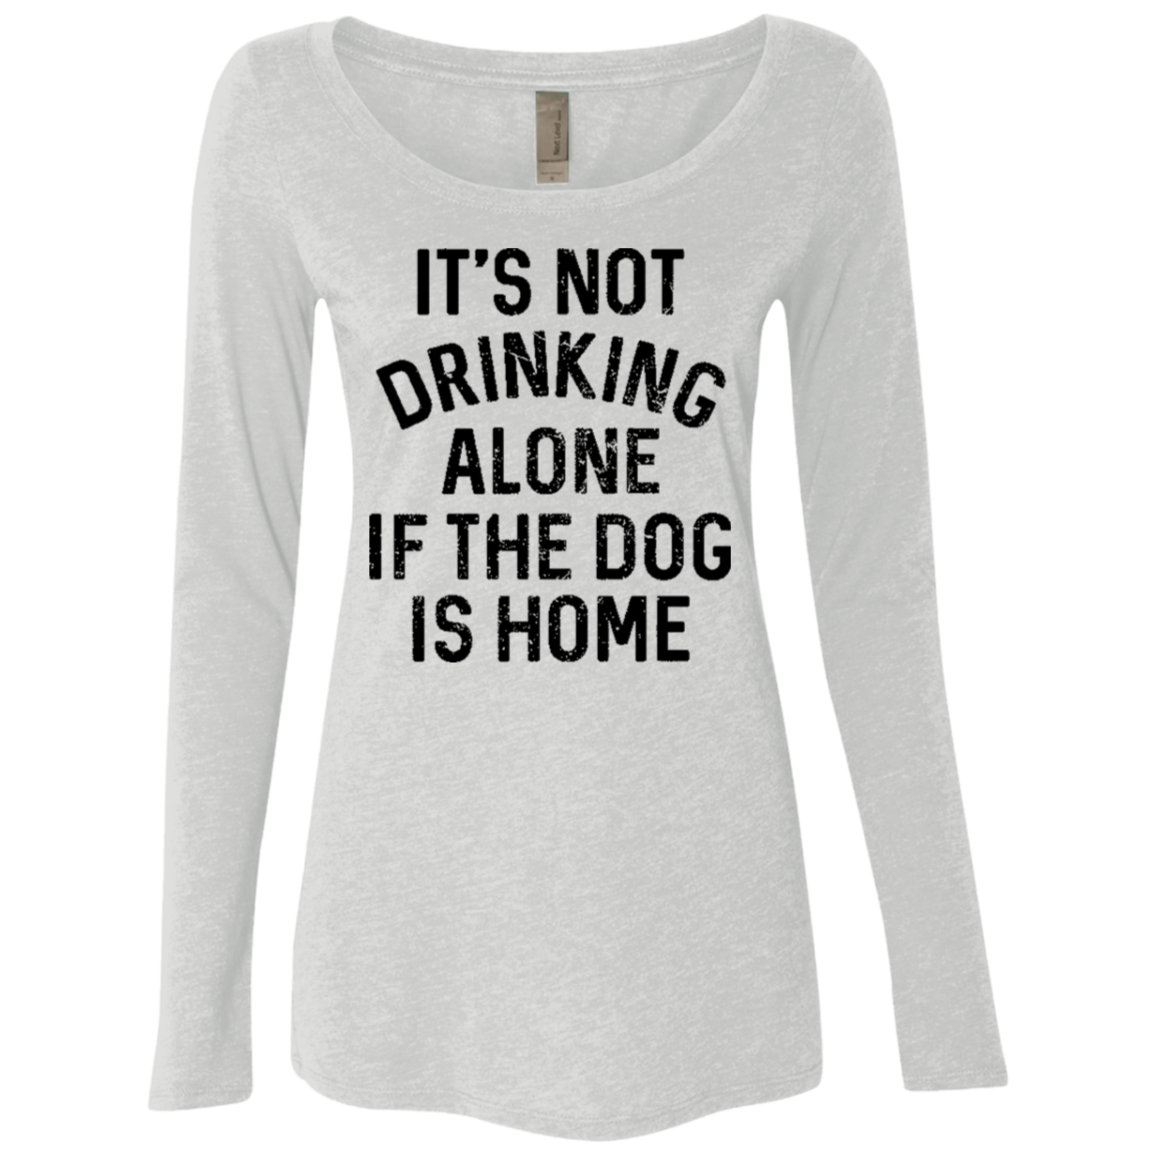 It's Not Drinking Alone If The Dog Is Home Women's Long Sleeve Tee